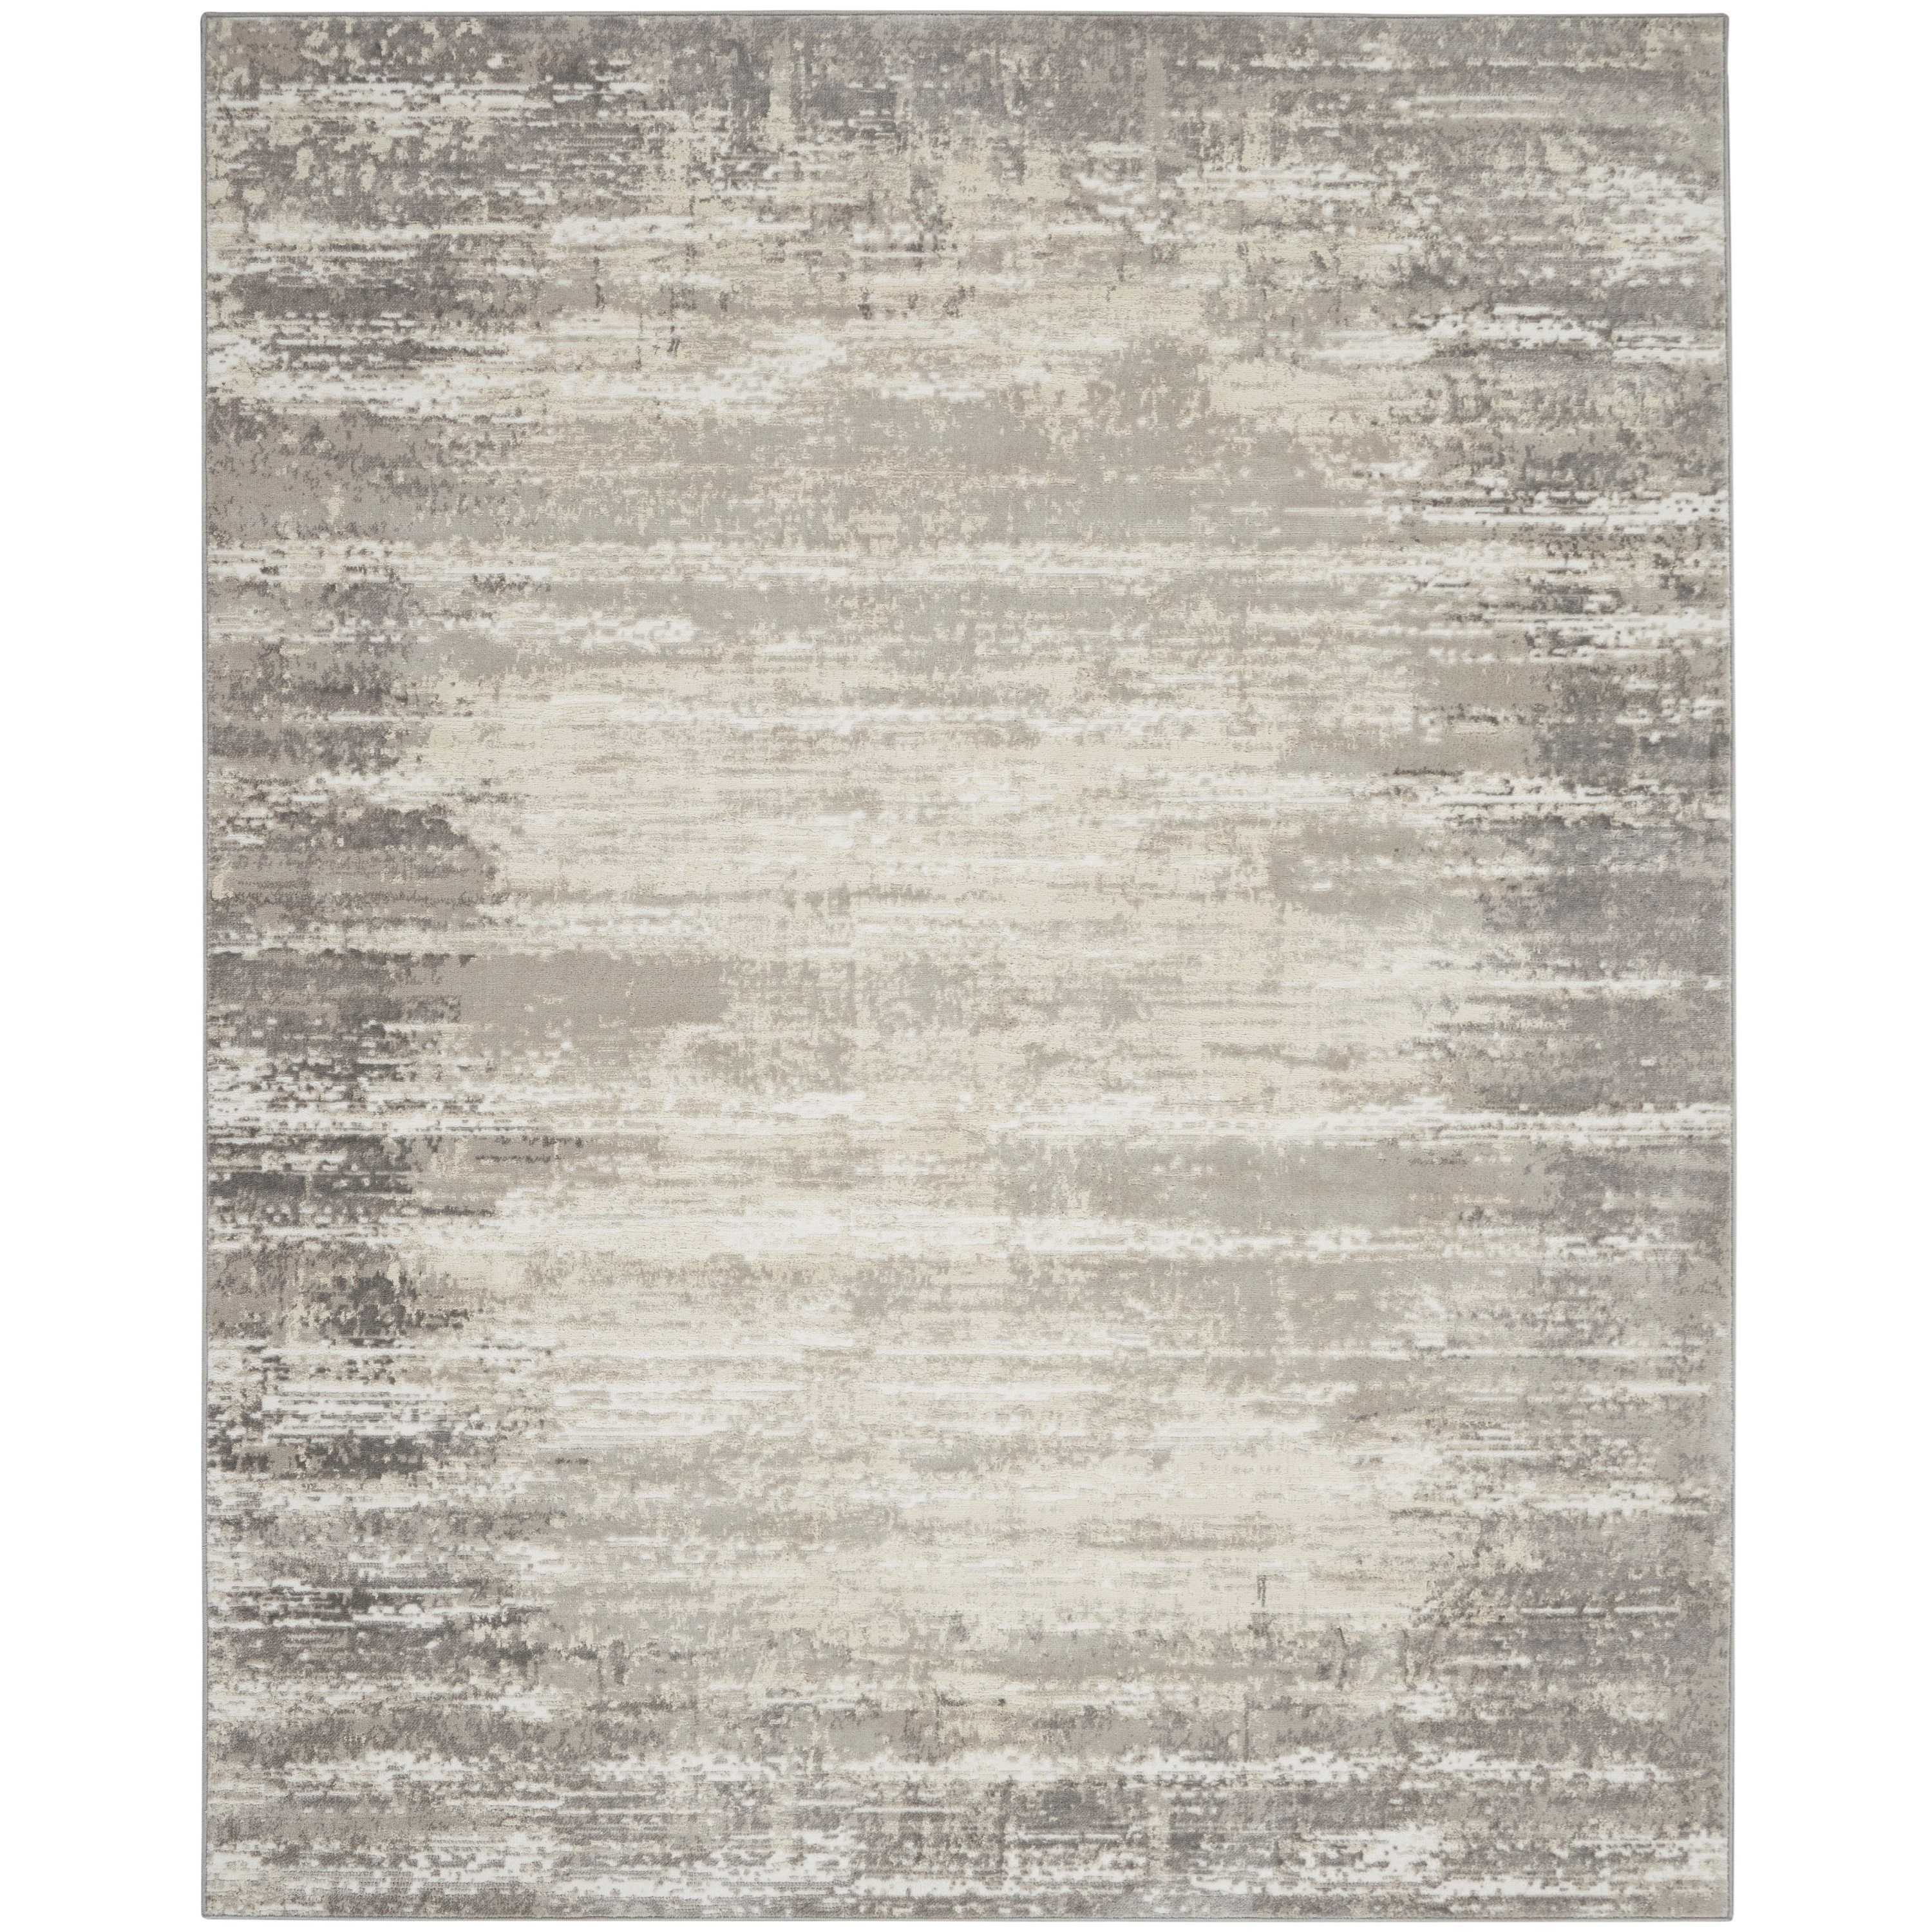 Cyrus 2020 8' x 10' Rug by Nourison at Sprintz Furniture